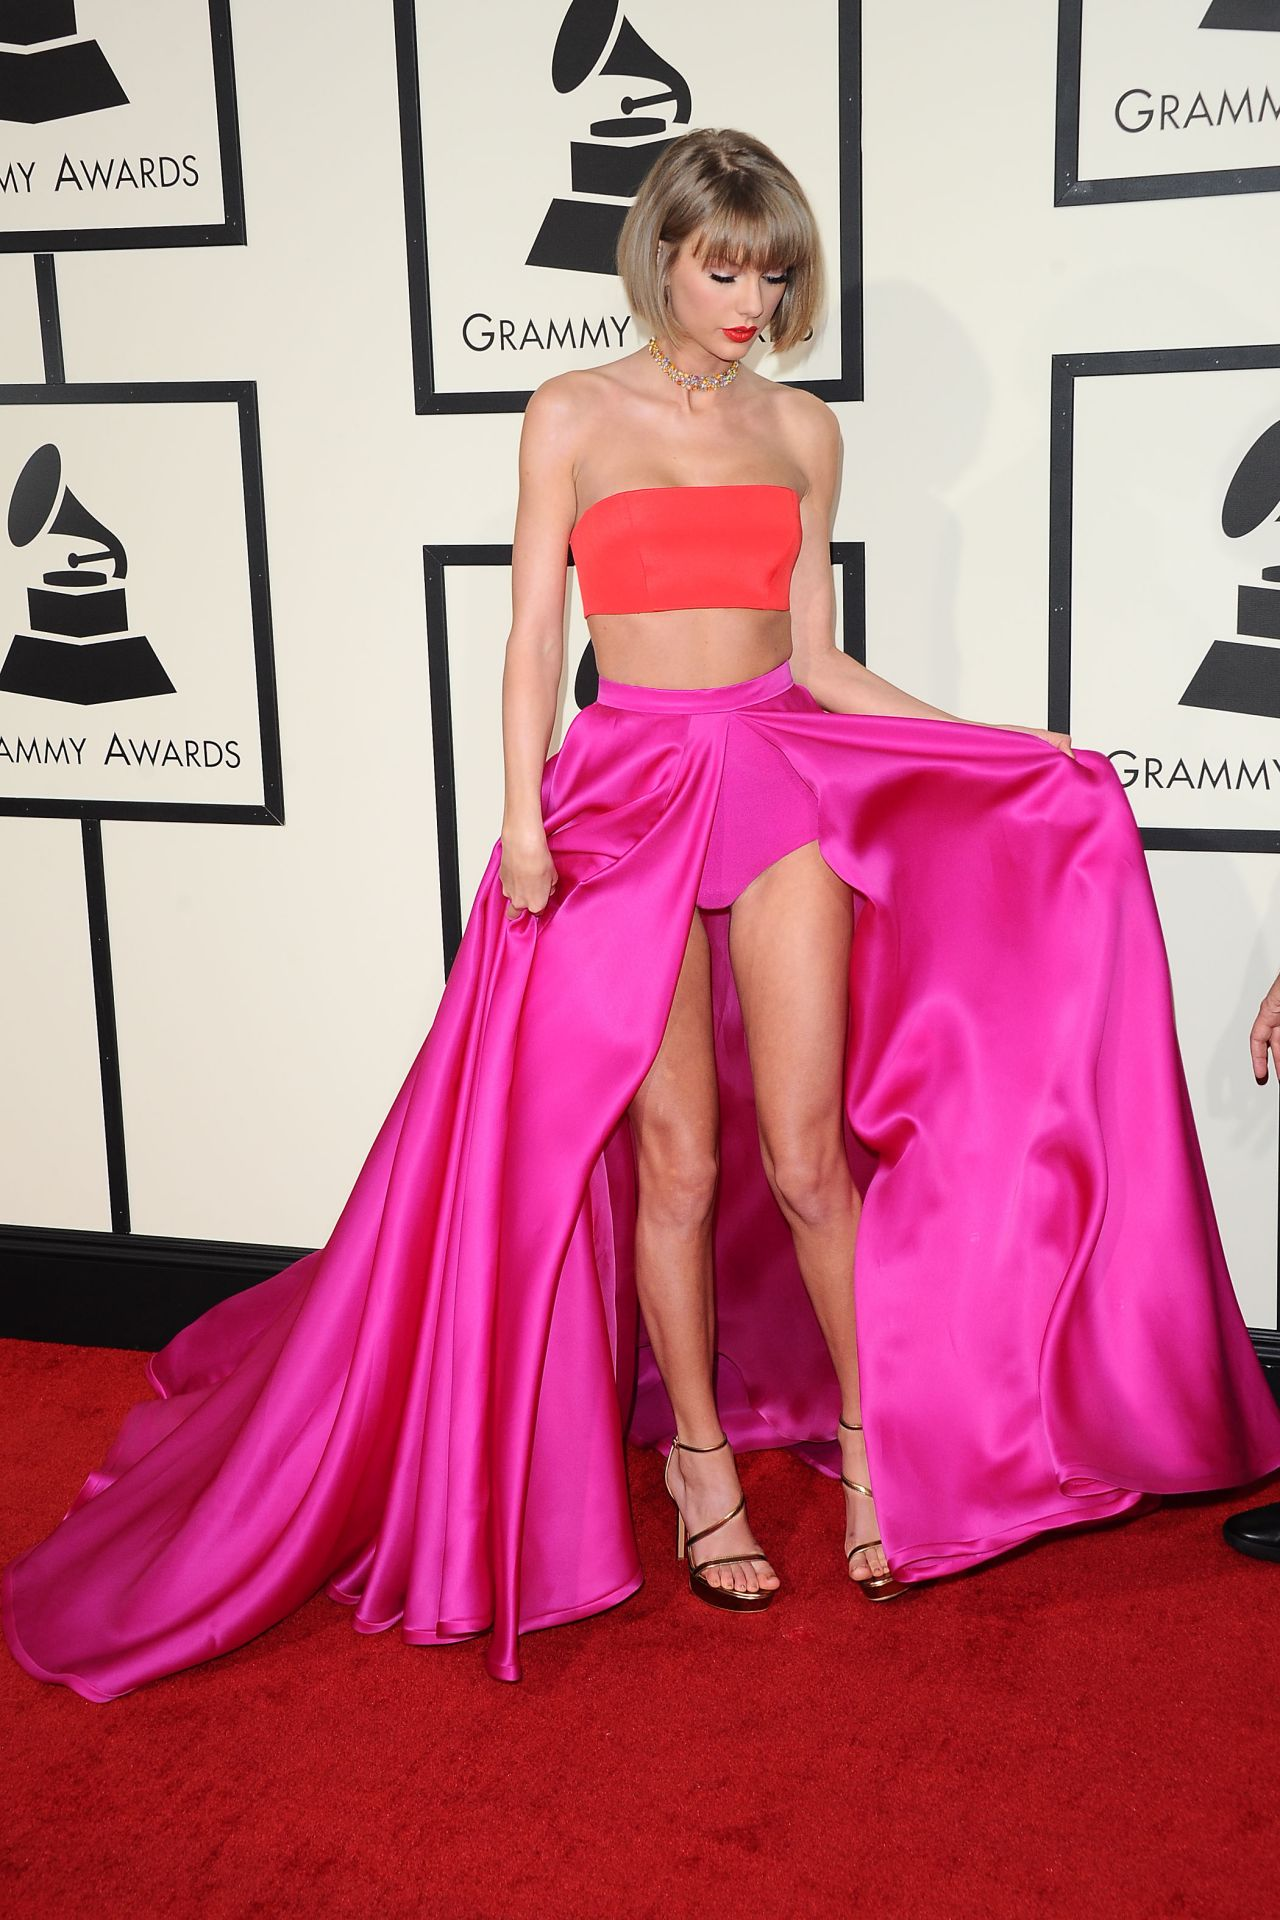 taylor-swift-2016-grammy-awards-in-los-angeles-ca-29